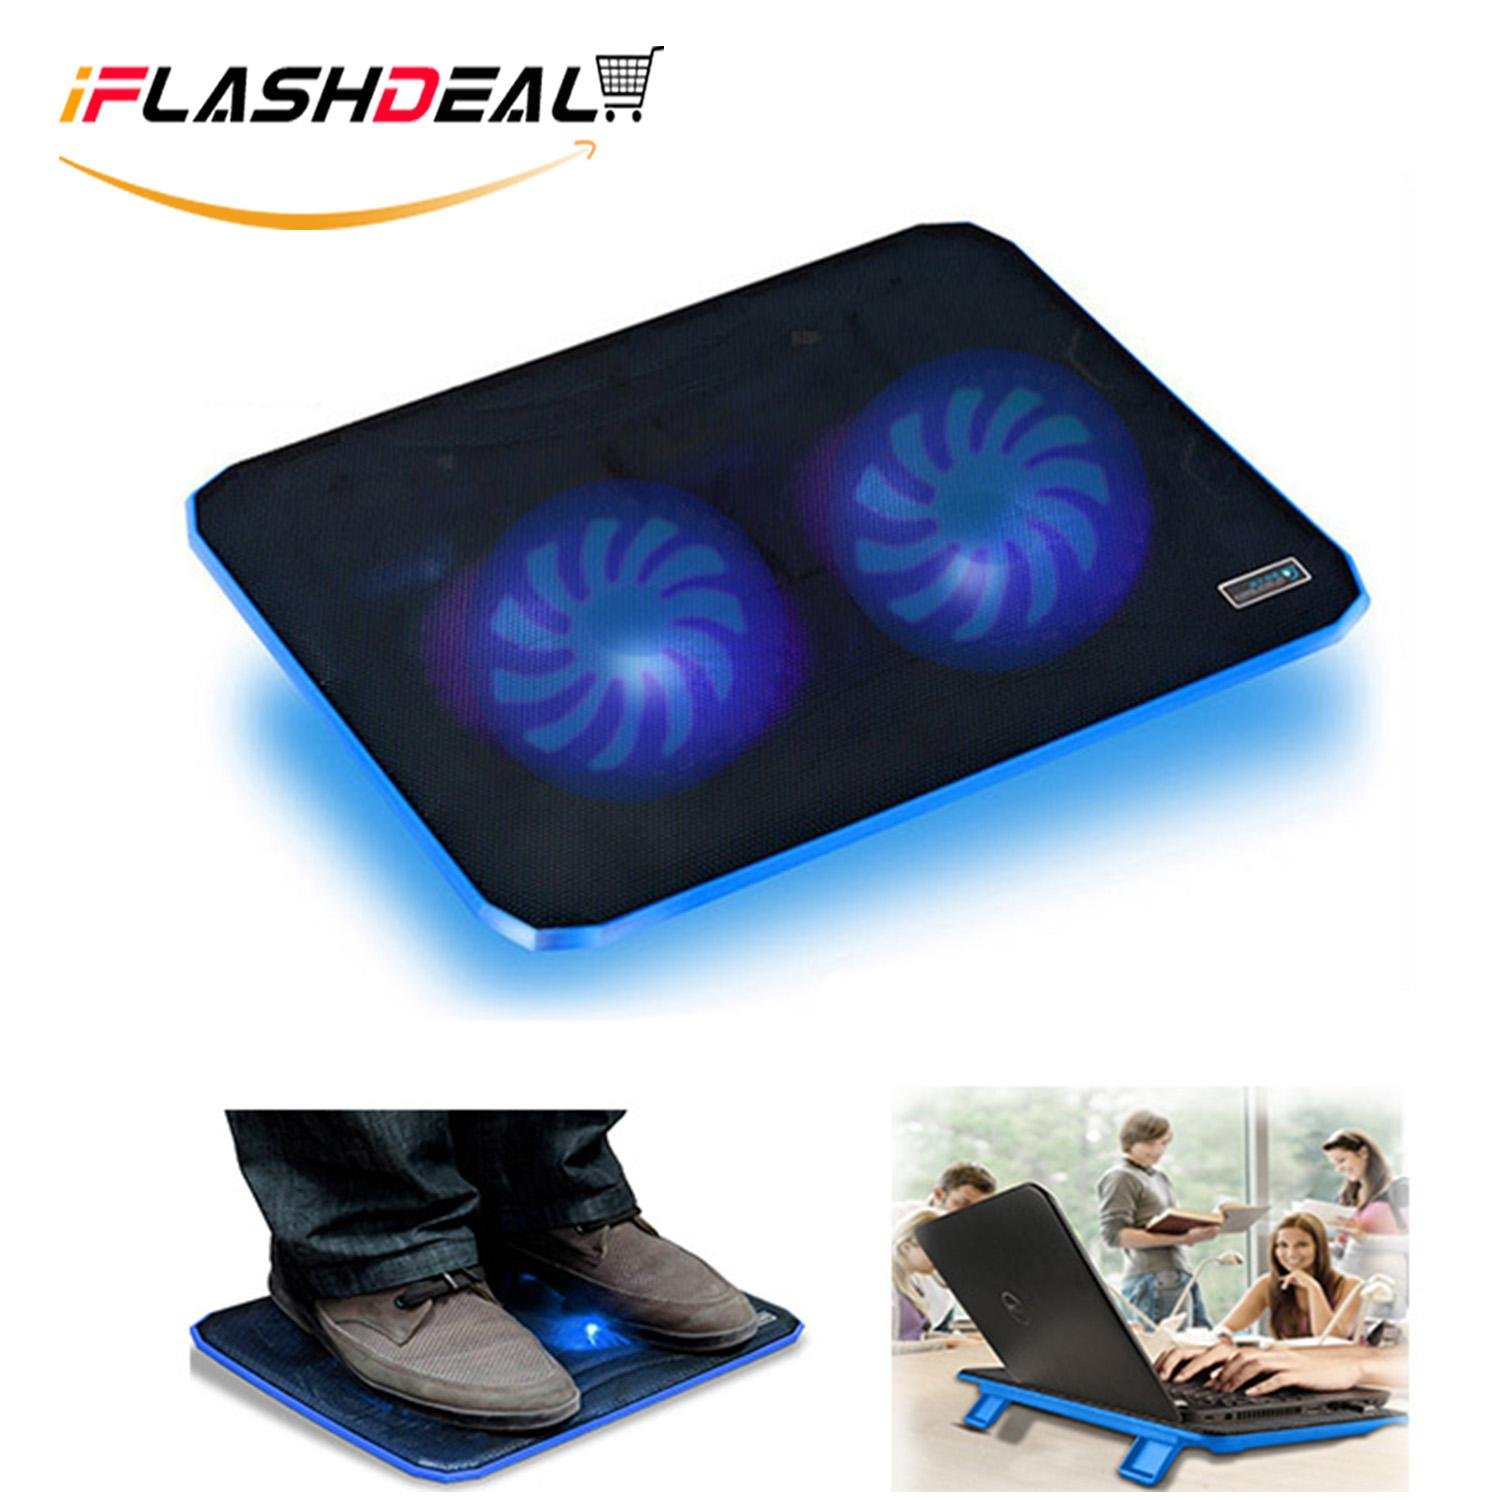 iFlashDeal USB Laptop Cooling Pad, Slim Portable Laptop Cooler Lightweight Notebook Mat with 2 Heavy Duty Fans, Powered with LED Lights for 10 - 15 Notebook Computer